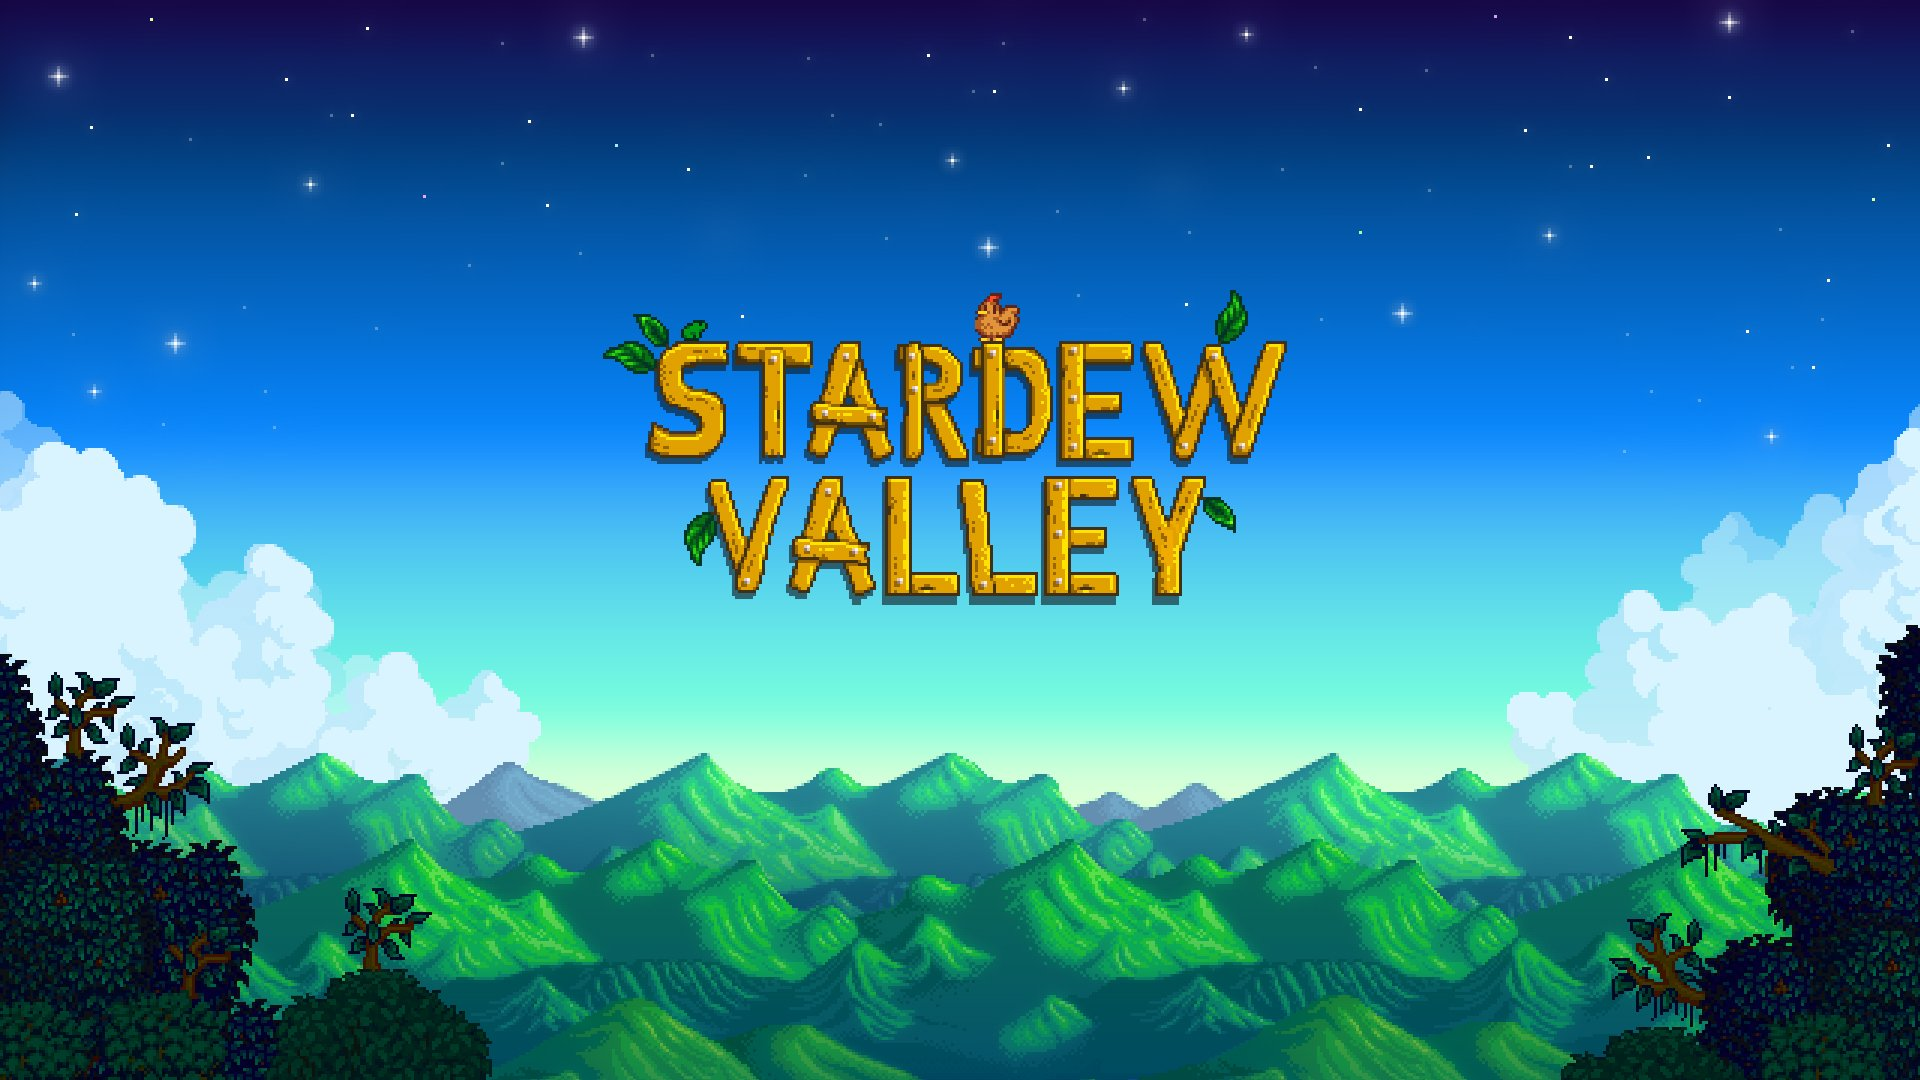 Stardew Valley is available for pre-registration on the Play Store